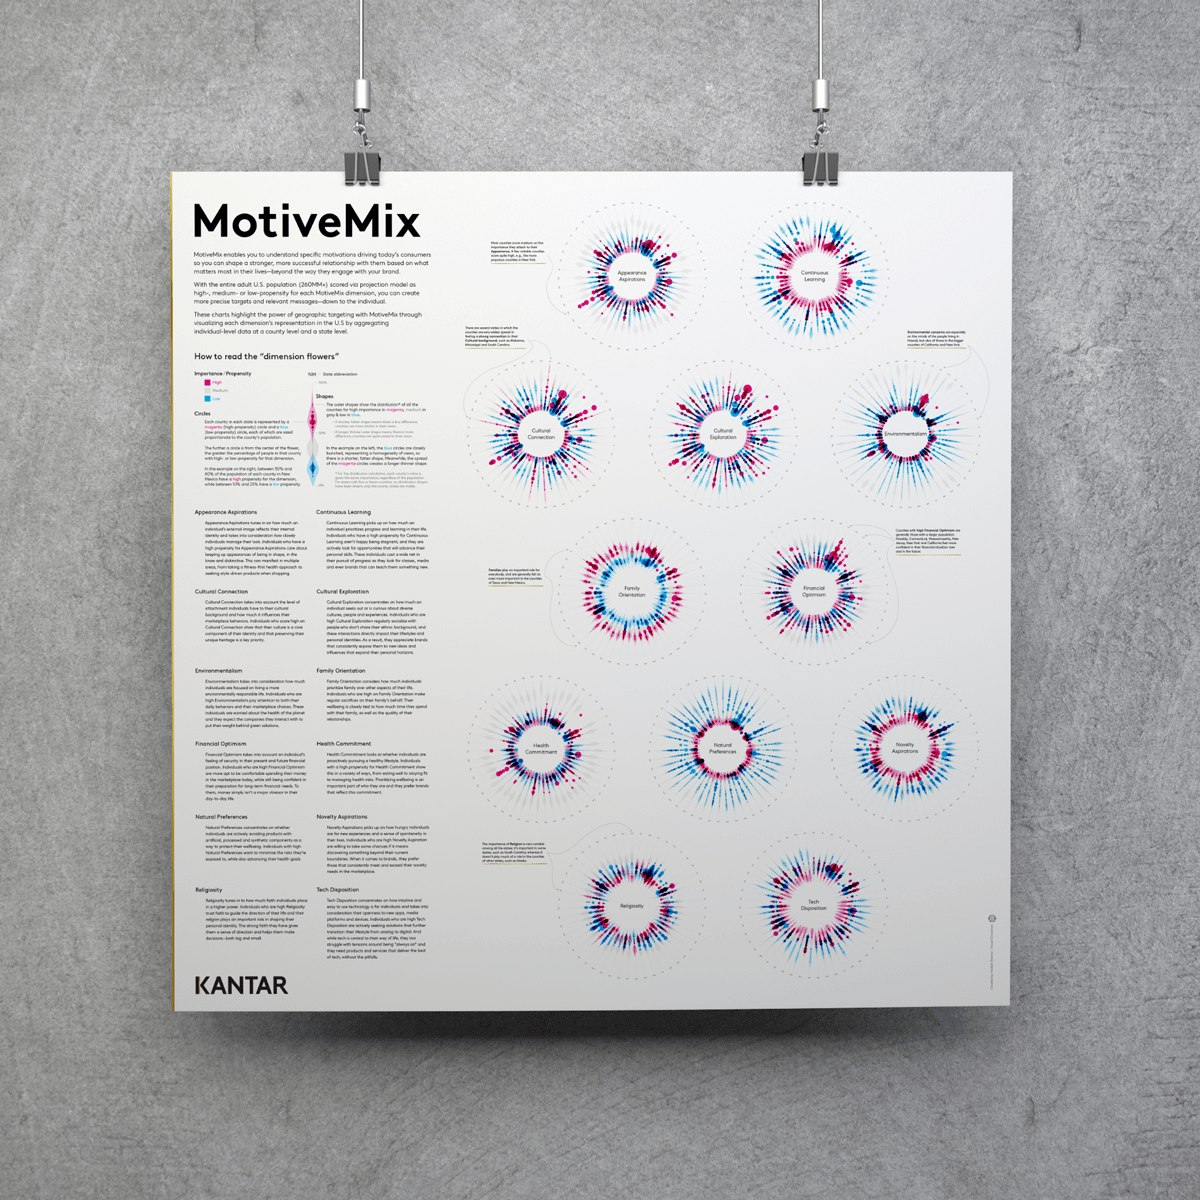 The white version of the poster about Kantar's MotiveMix dataset